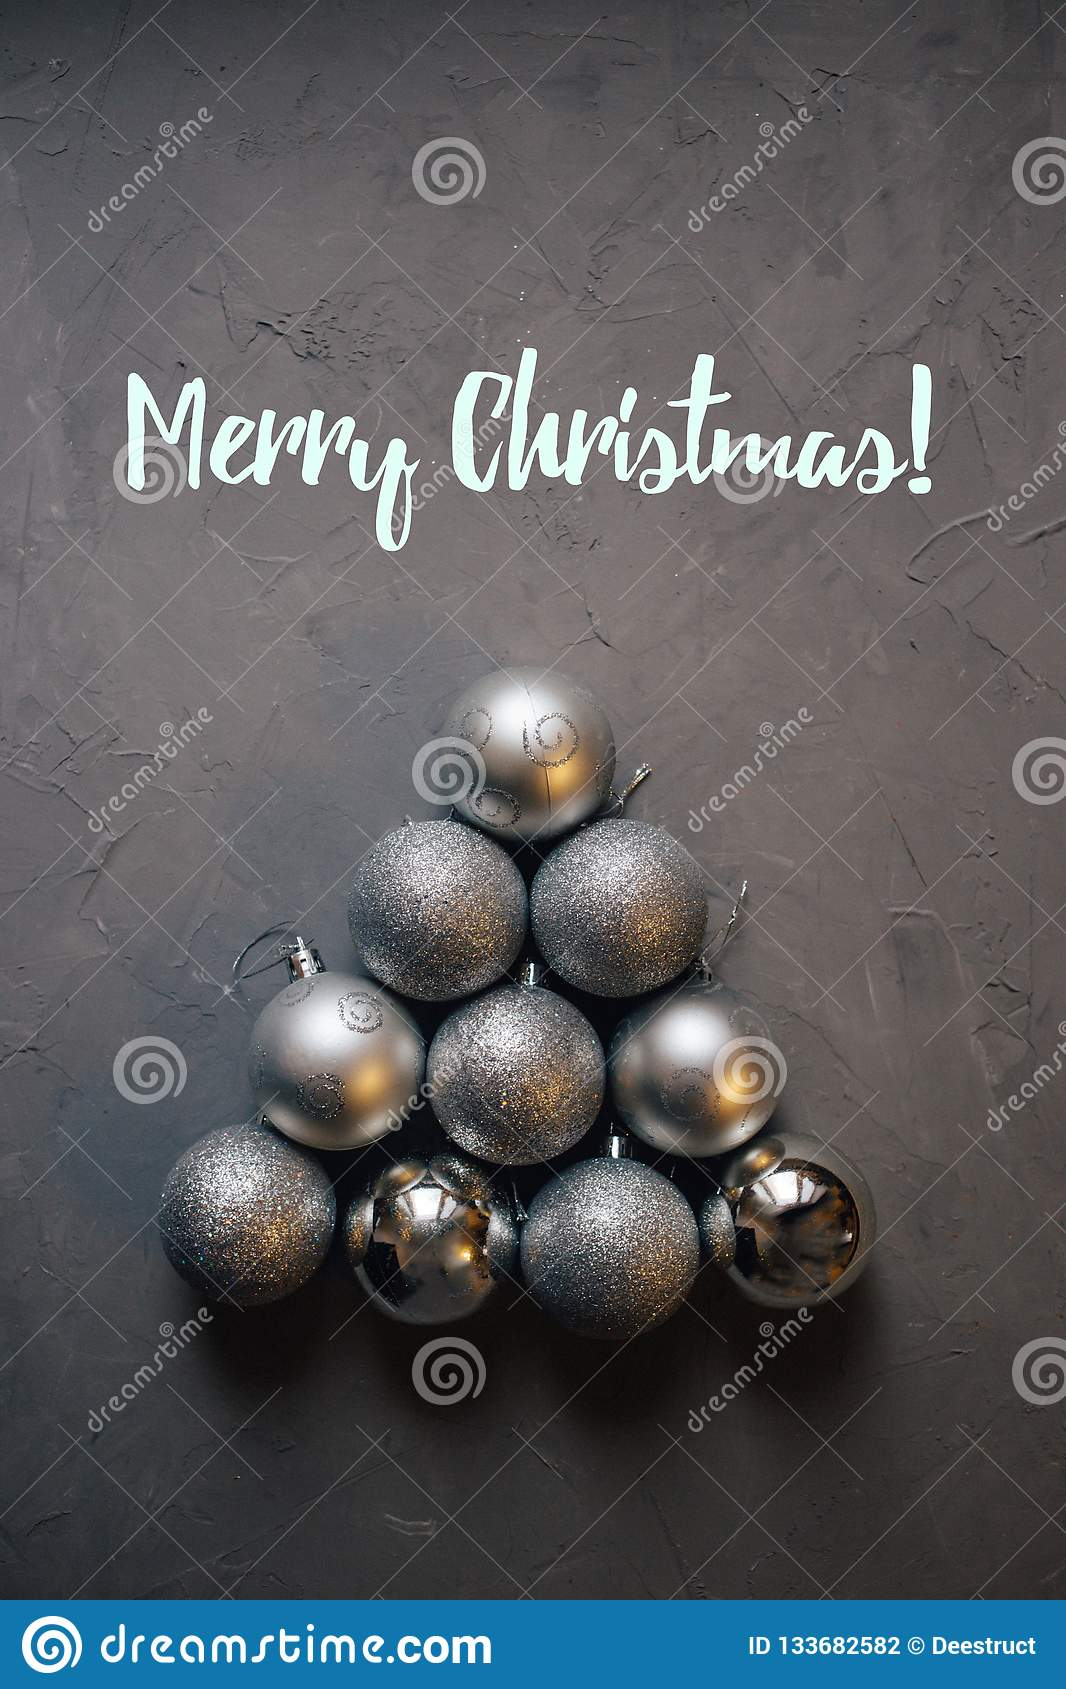 Christmas tree made by silver Christmas balls on the dark background, inscription merry Christmas